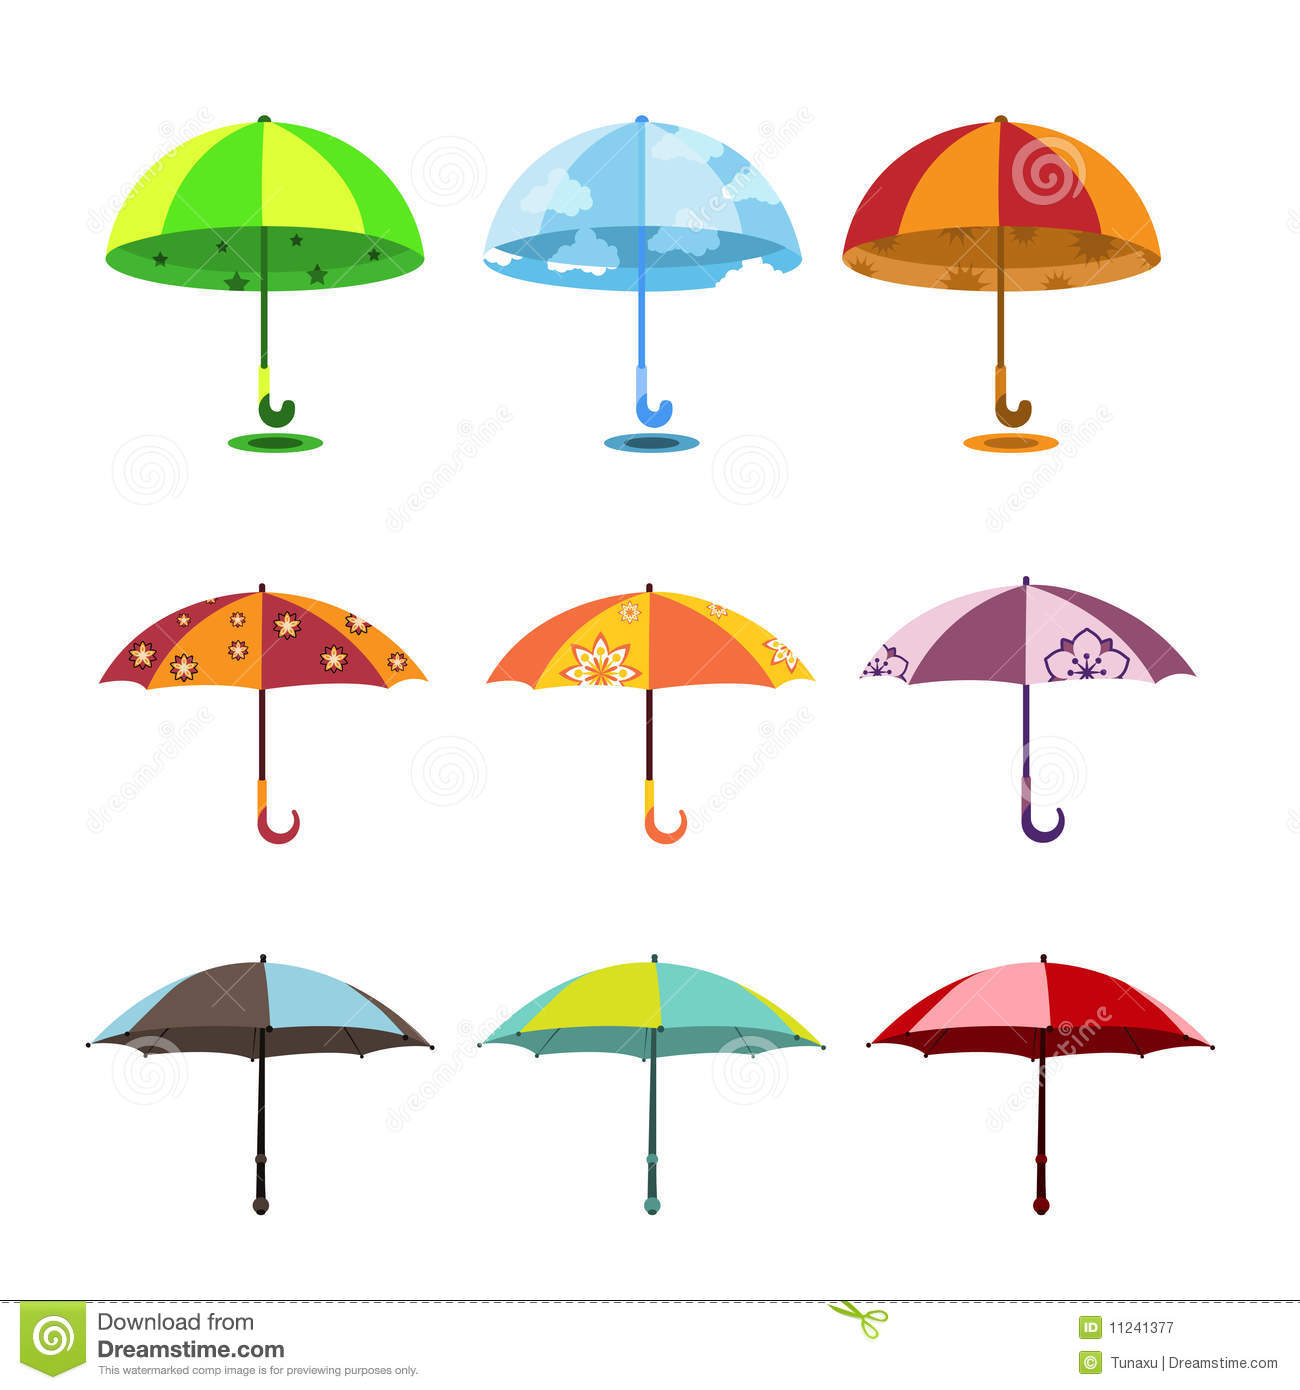 Positionnement de parapluie illustration stock - Dessin parapluie ...